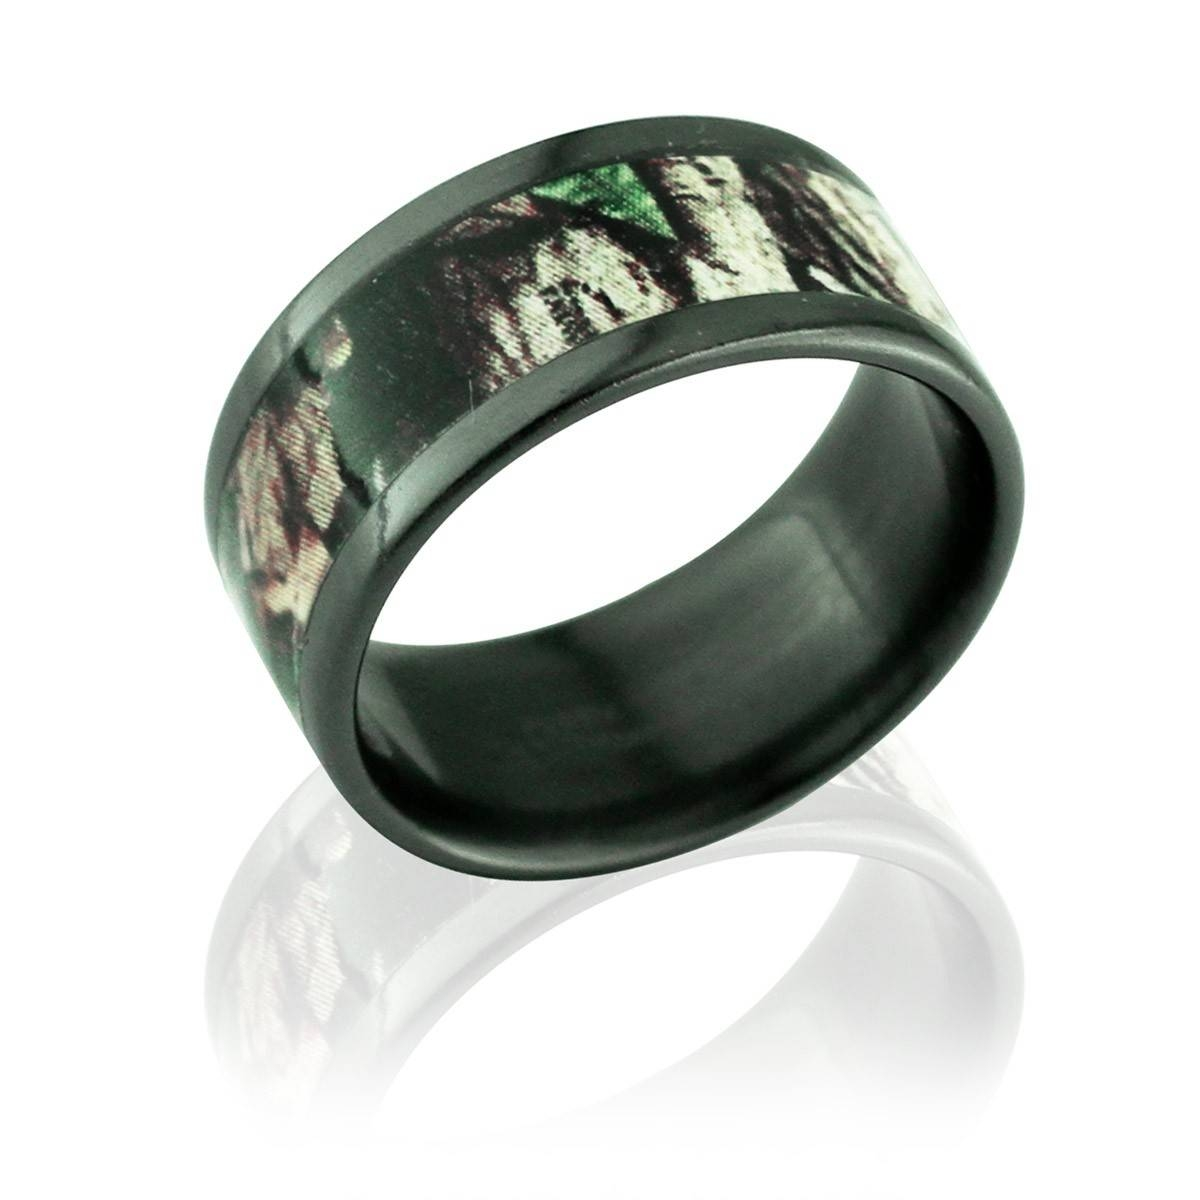 45 Camo Wedding Ring Sets For Him And Her, Camo Wedding Ring Set Intended For Camo Wedding Bands For Her (Gallery 5 of 15)